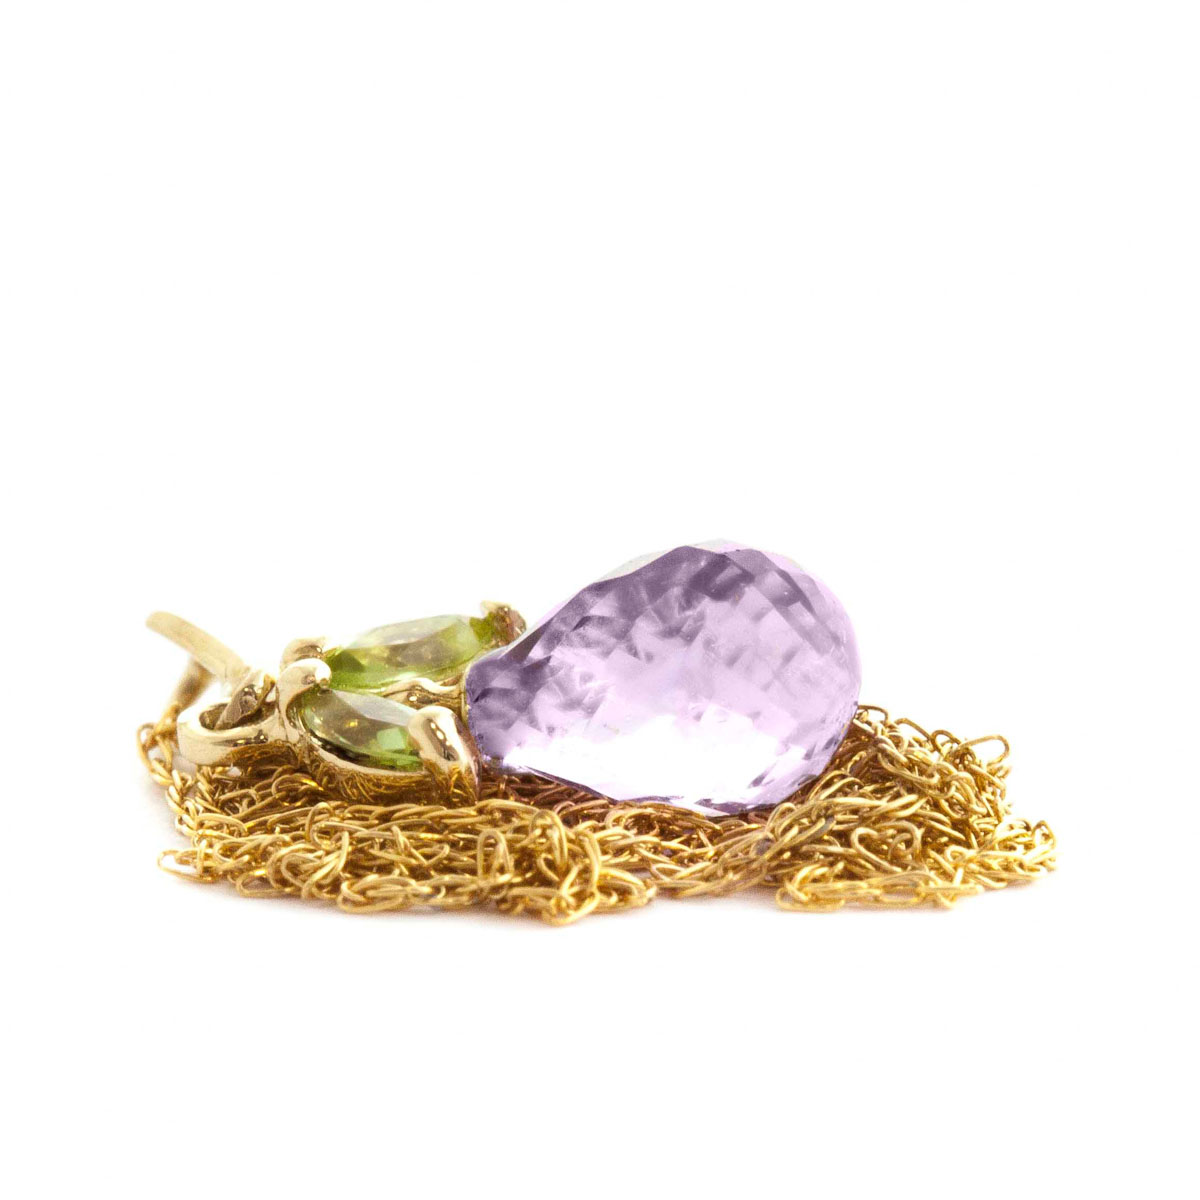 Amethyst & Peridot Snowdrop Pendant Necklace in 9ct Gold